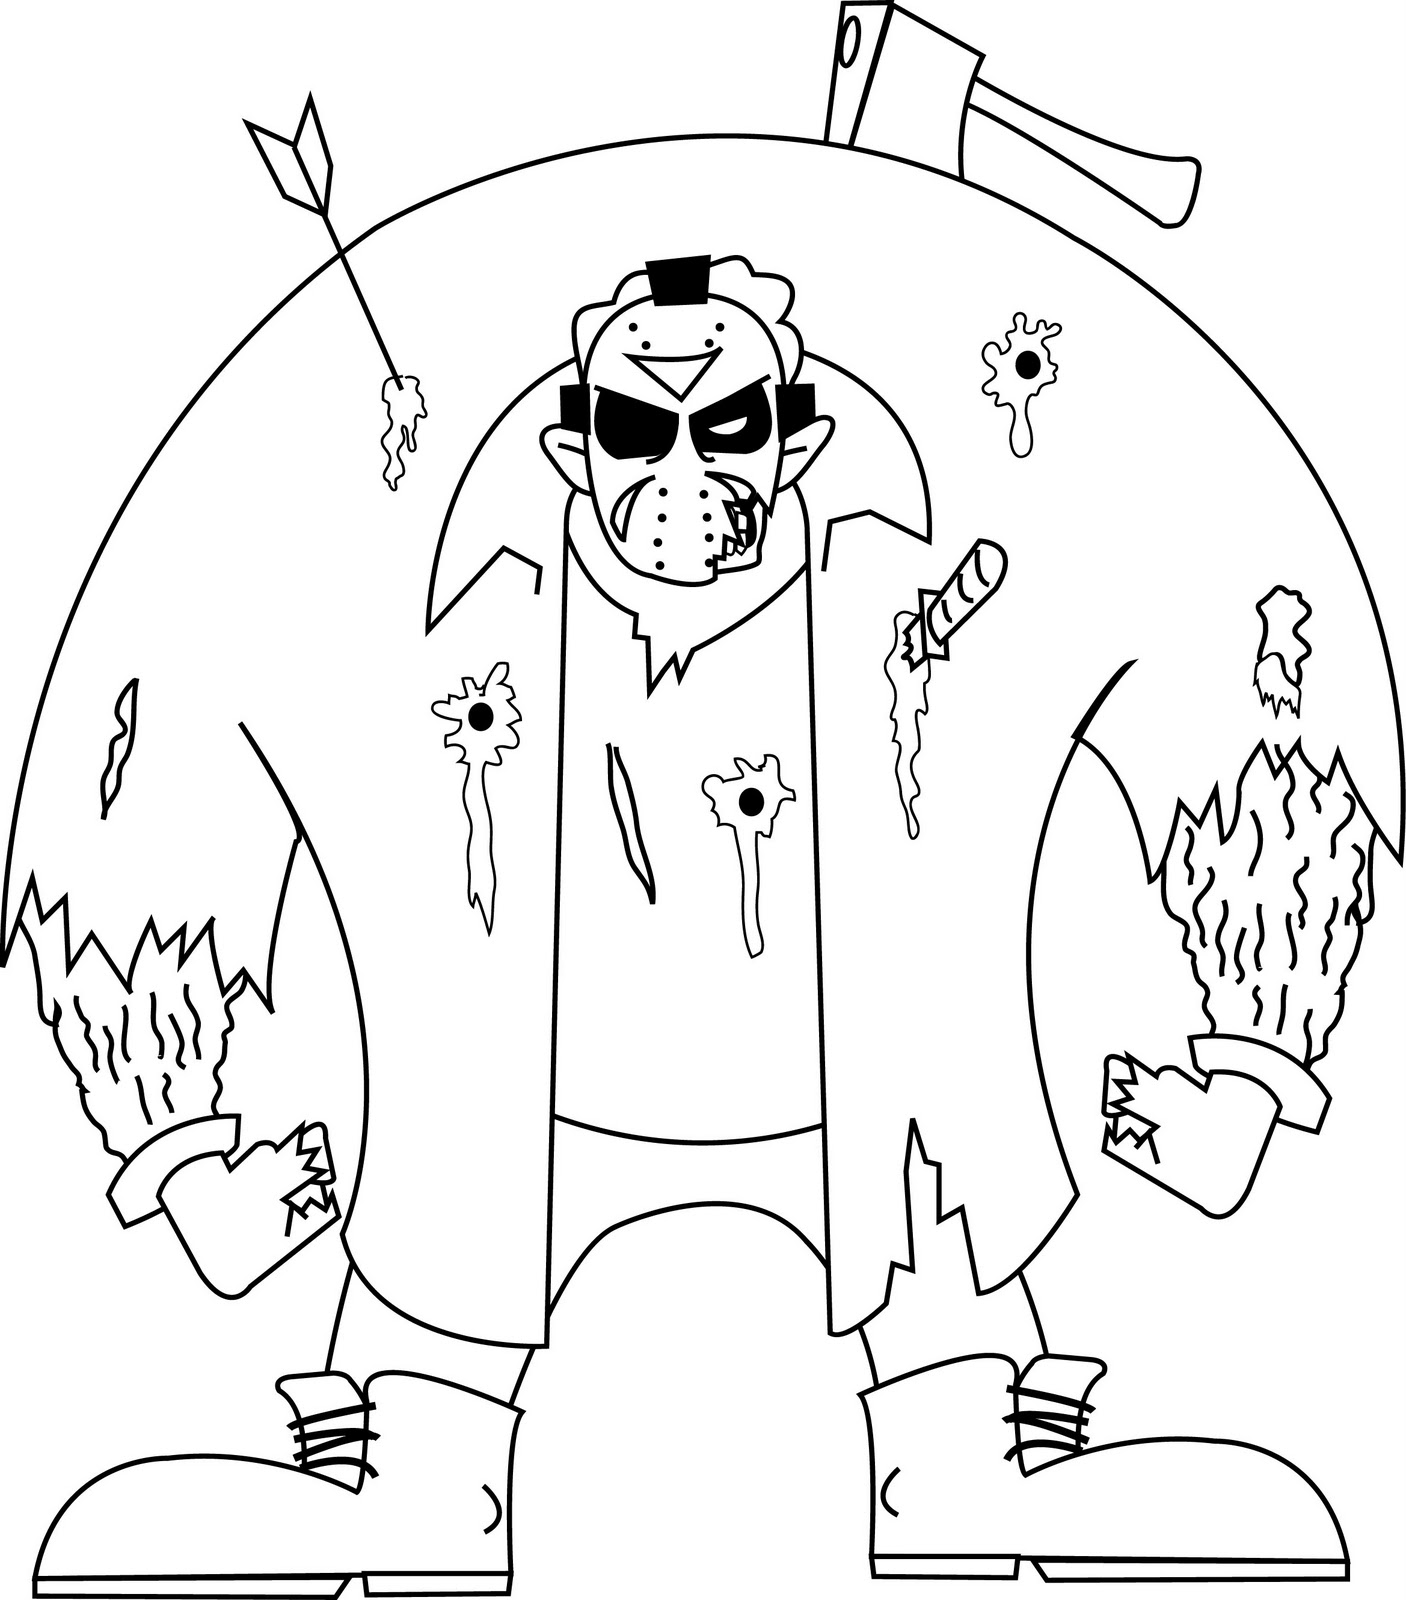 Pin chucky doll coloring pages on pinterest for Chucky doll coloring pages